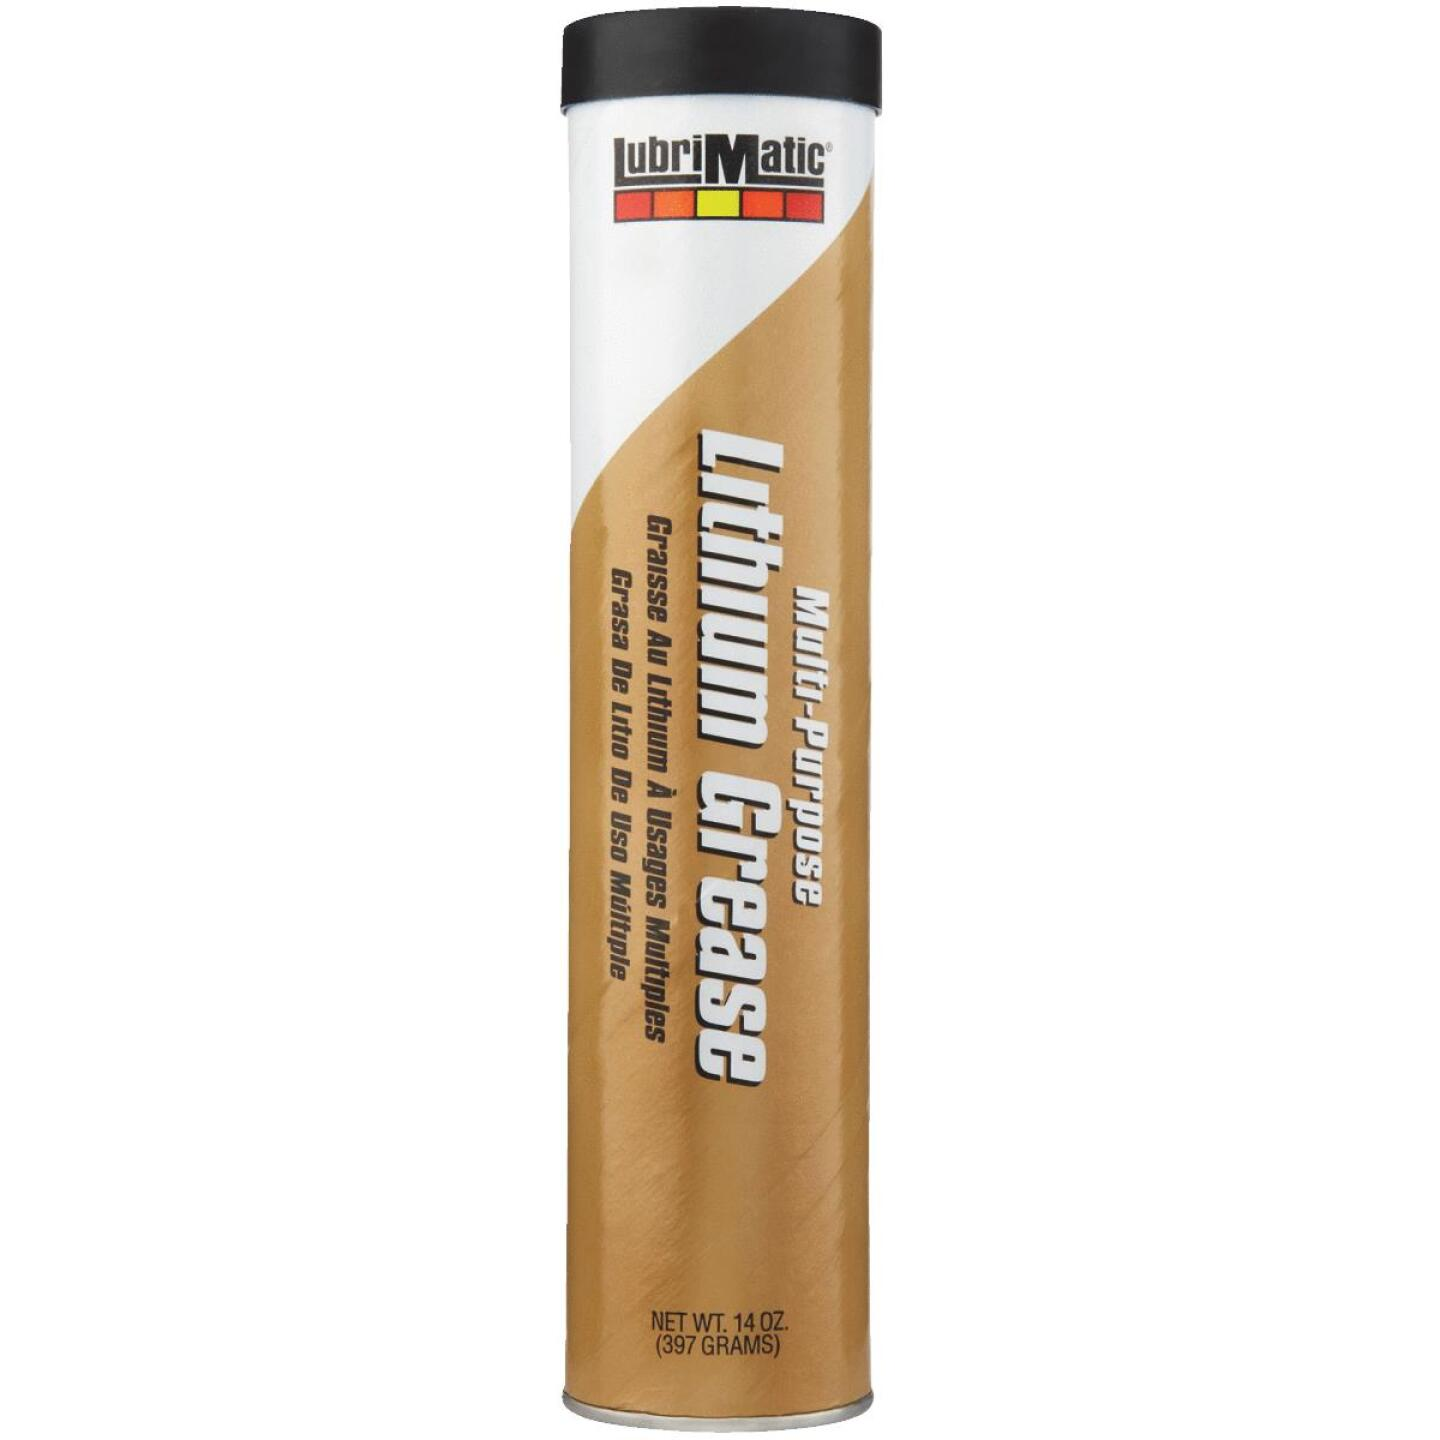 LubriMatic 14 Oz. Cartridge Multi-Purpose Lithium Grease Image 1